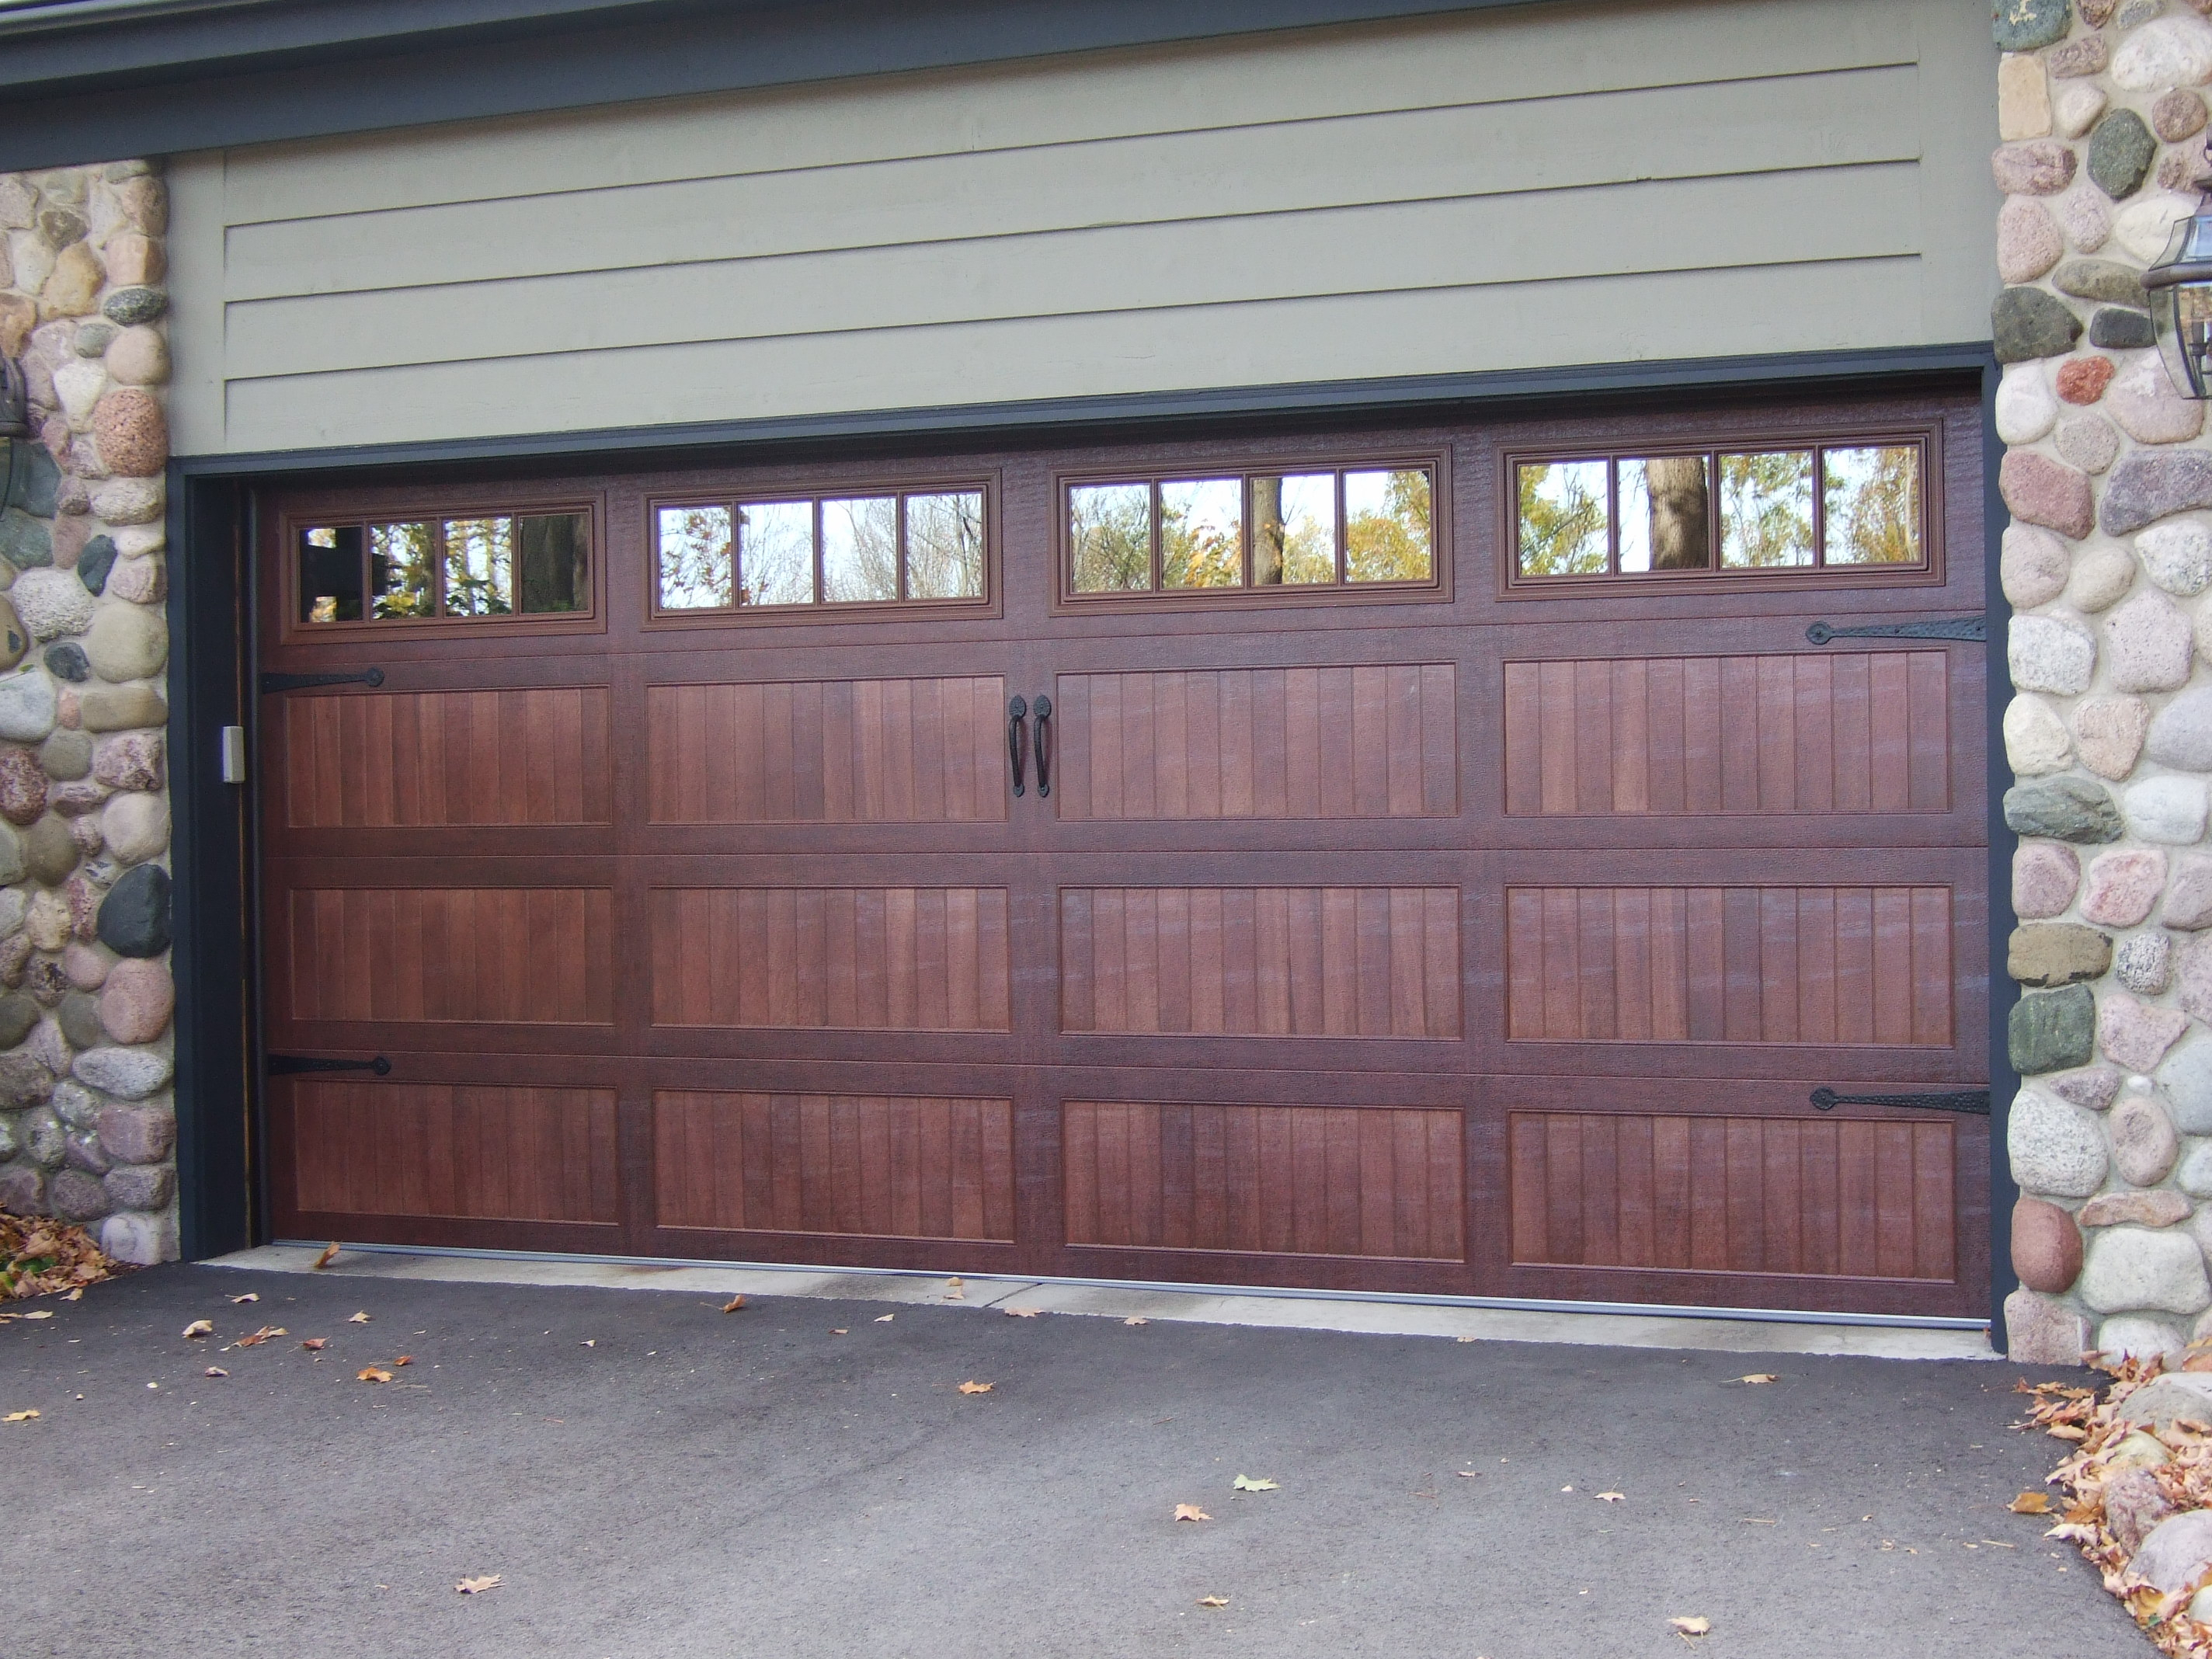 Dakota Door Chi Overhead Doors Murfreesboro Garage Door Sales in dimensions 2848 X 2136